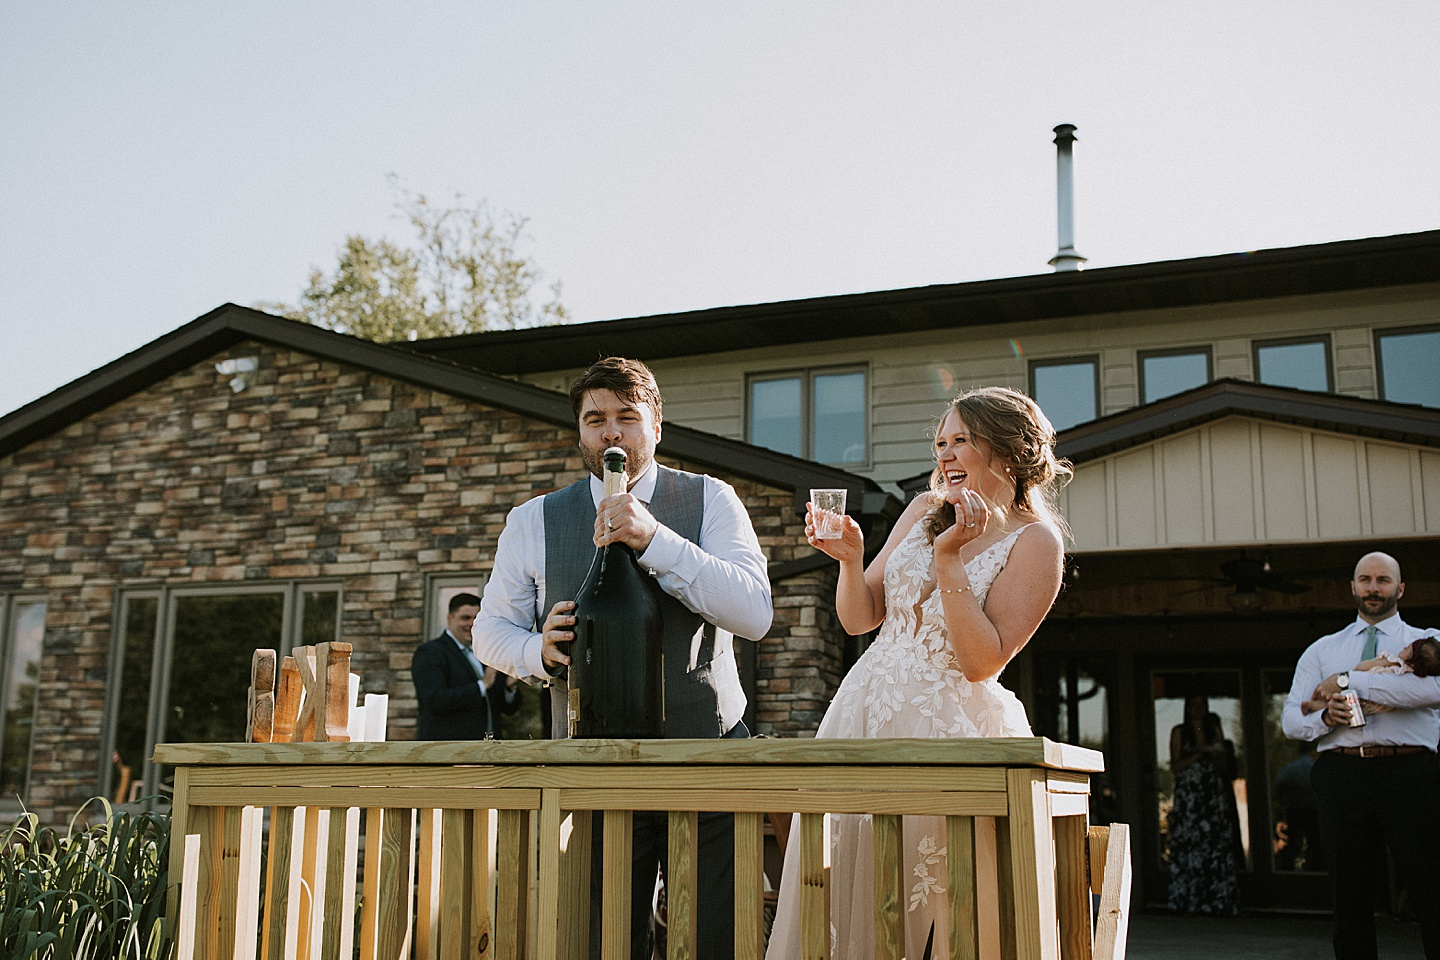 Groom opening giant bottle of champagne at wedding